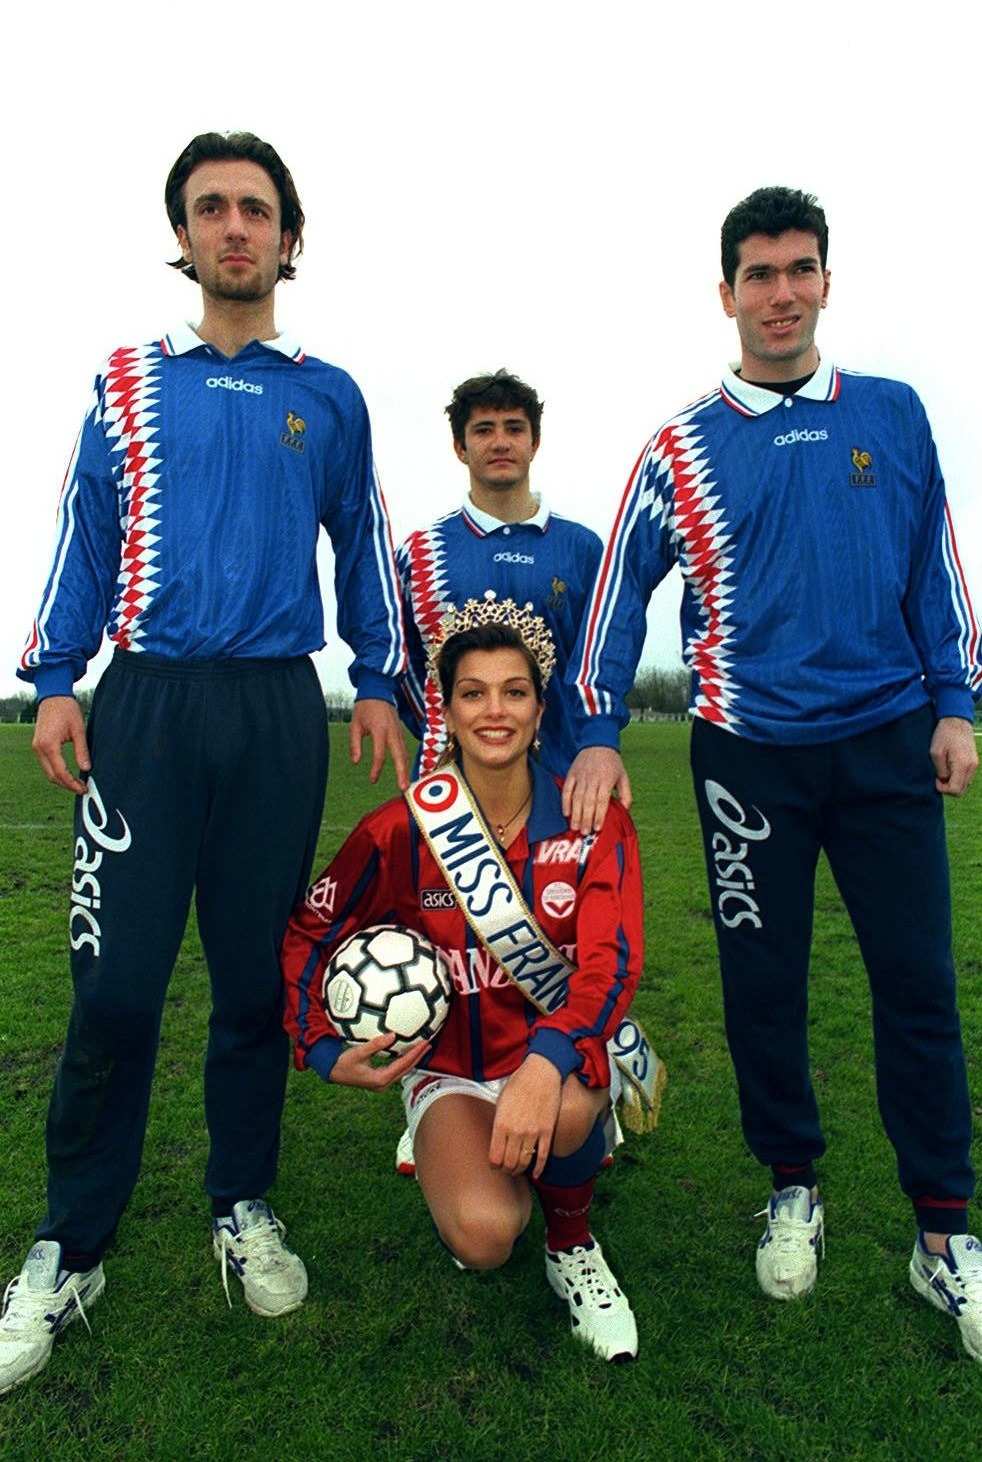 Dugarry, Lizarazu and Zidane with Miss France, 1995.